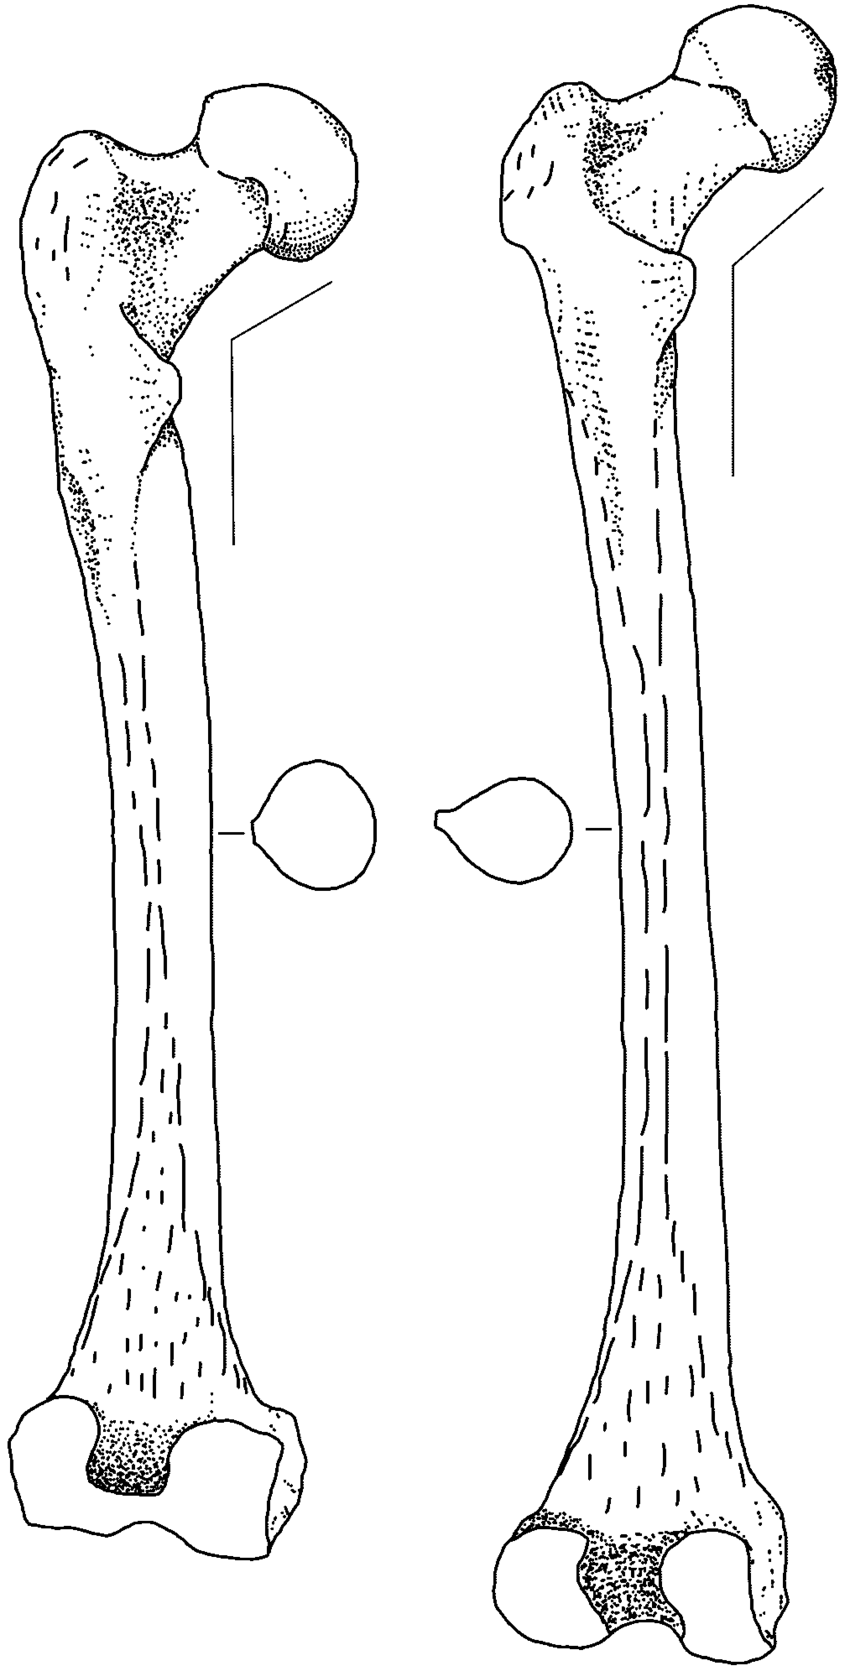 hight resolution of distinctive features of the neandertal femur left the neandertal 1 download scientific diagram